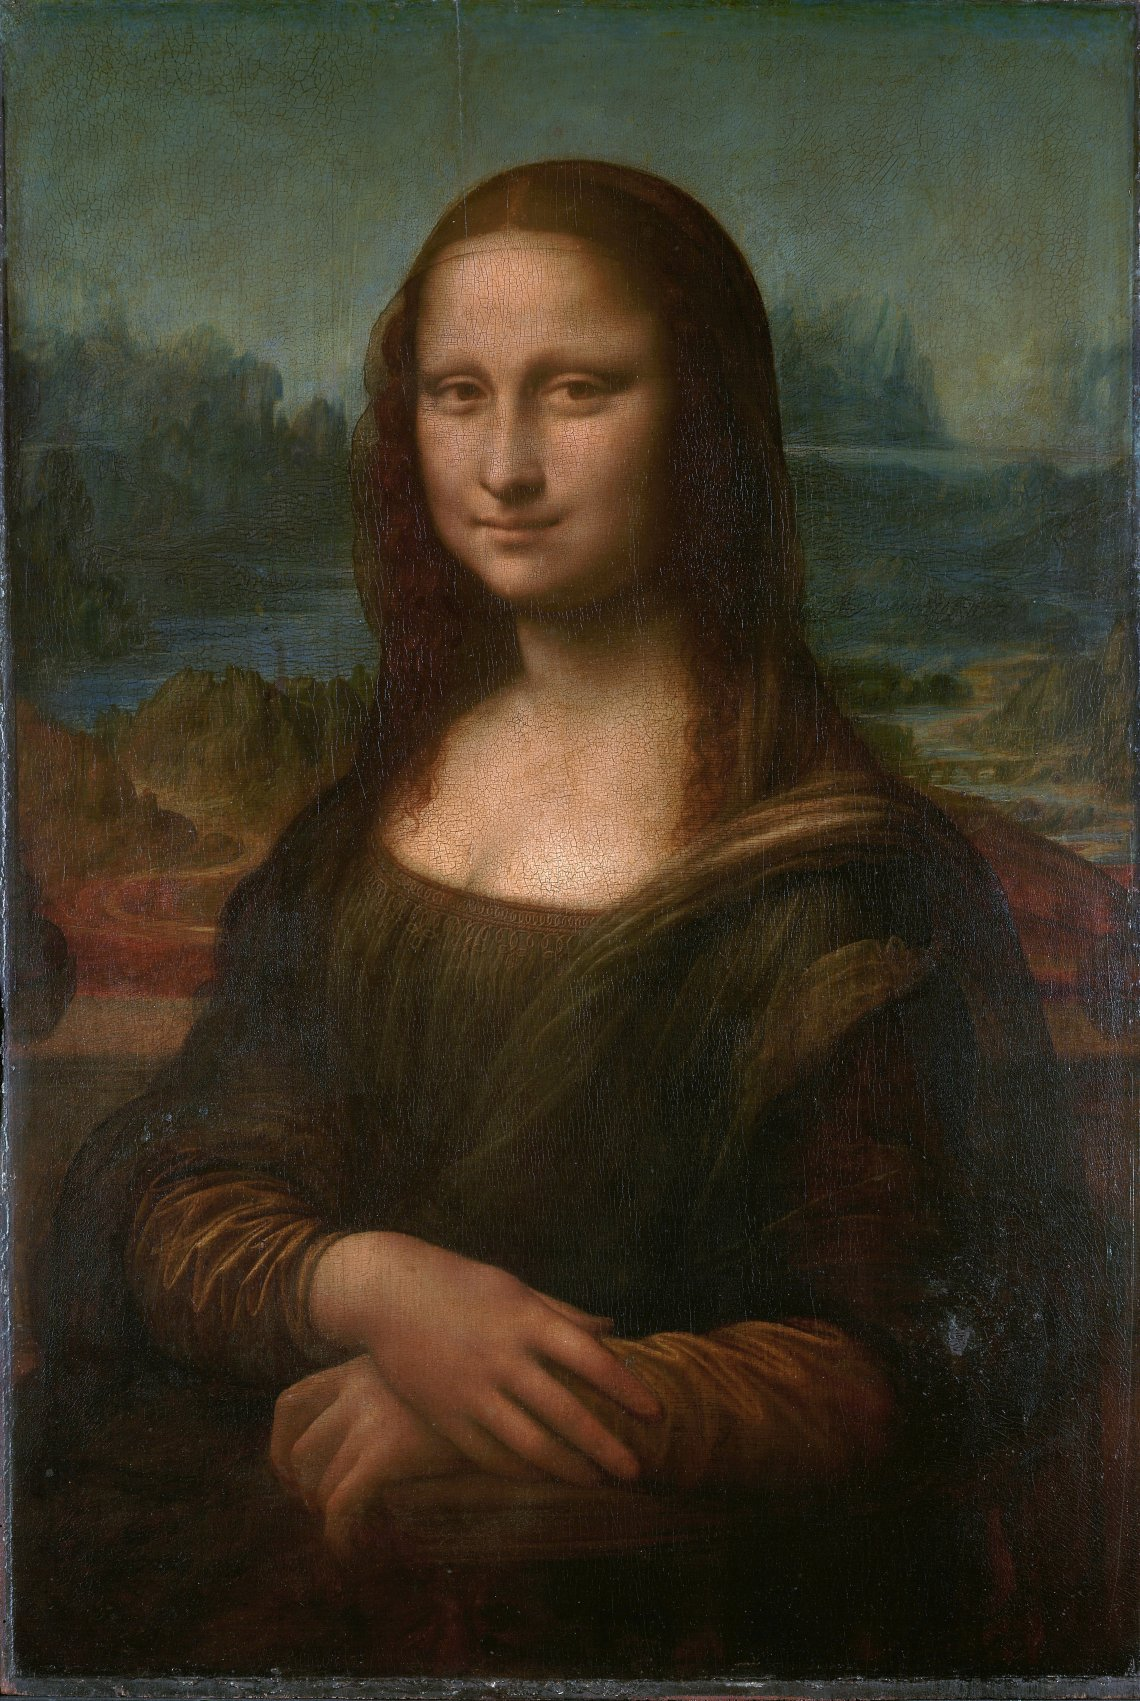 Mona Lisa%2C by Leonardo da Vinci%2C from C2RMF natural color Kanye Fashion